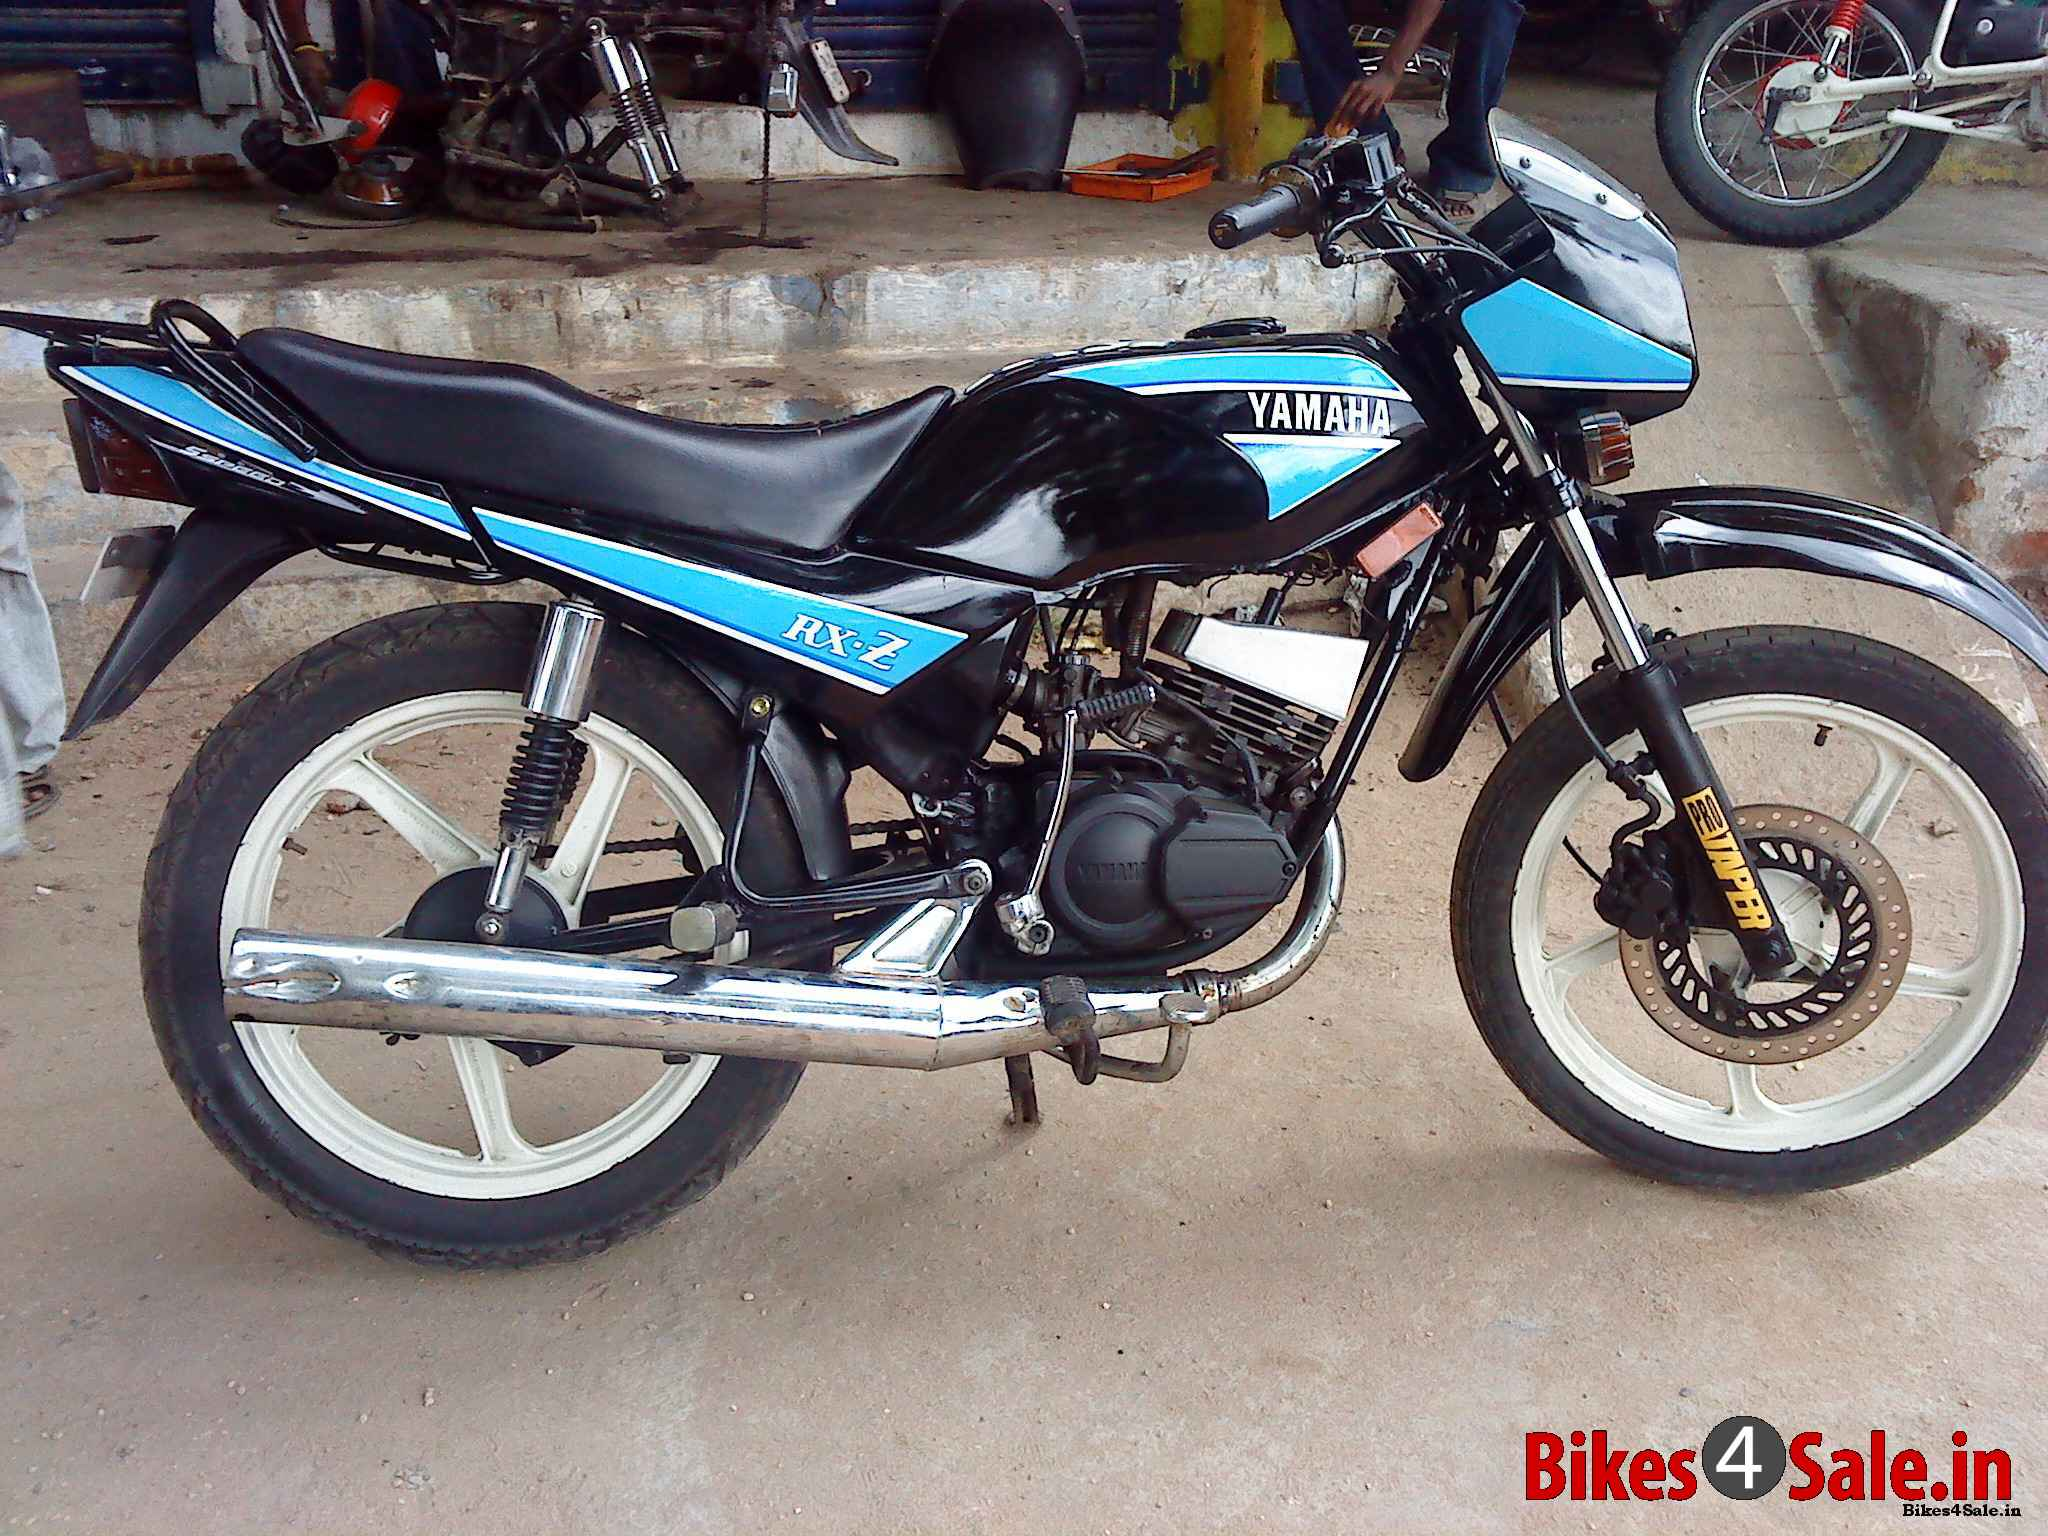 Yamaha rxz photo - 7